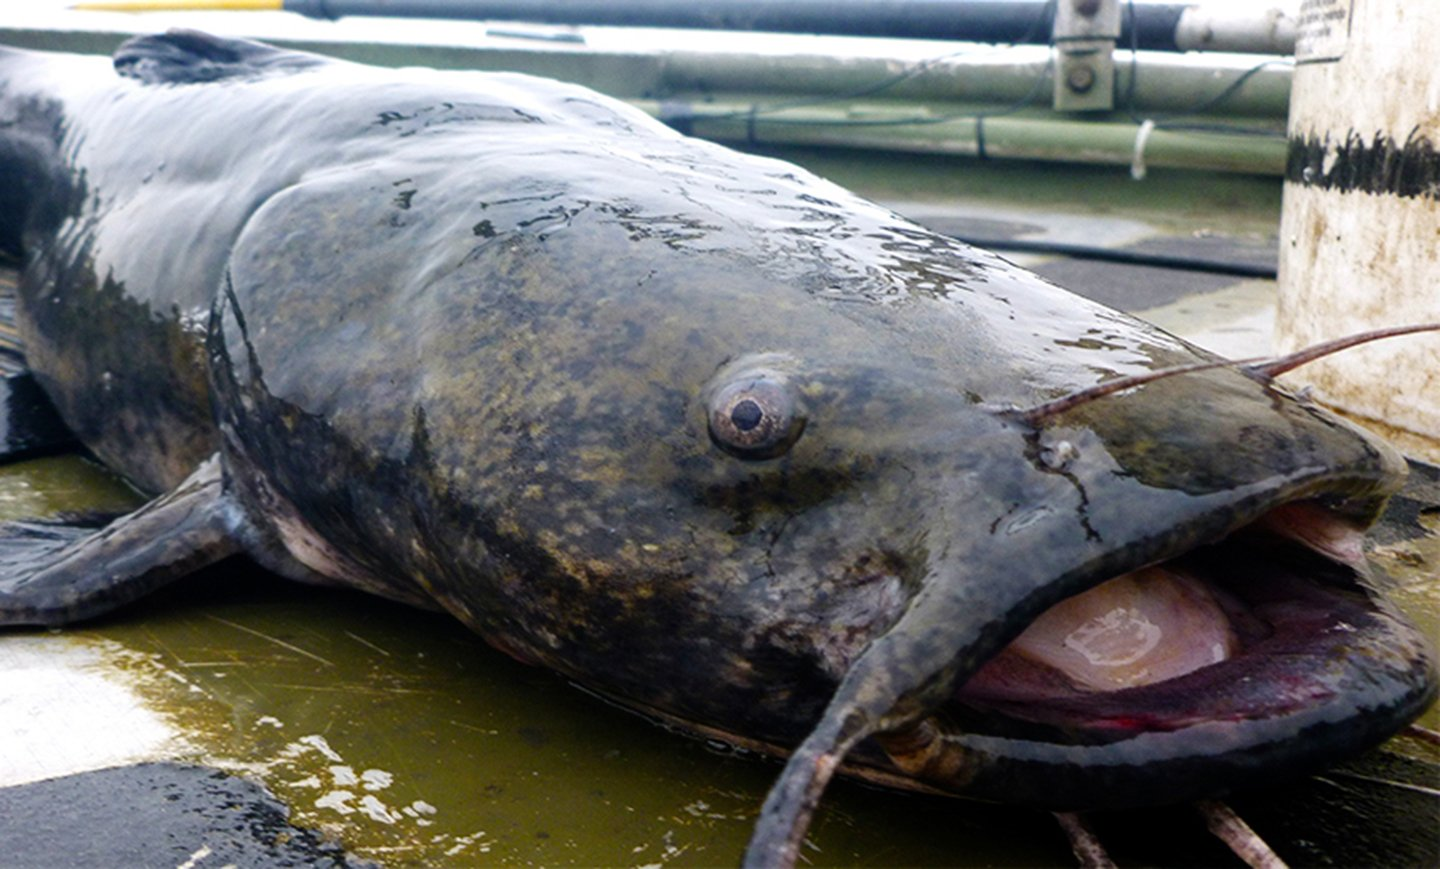 A Flathead Catfish with its mouth open on the deck of a boat